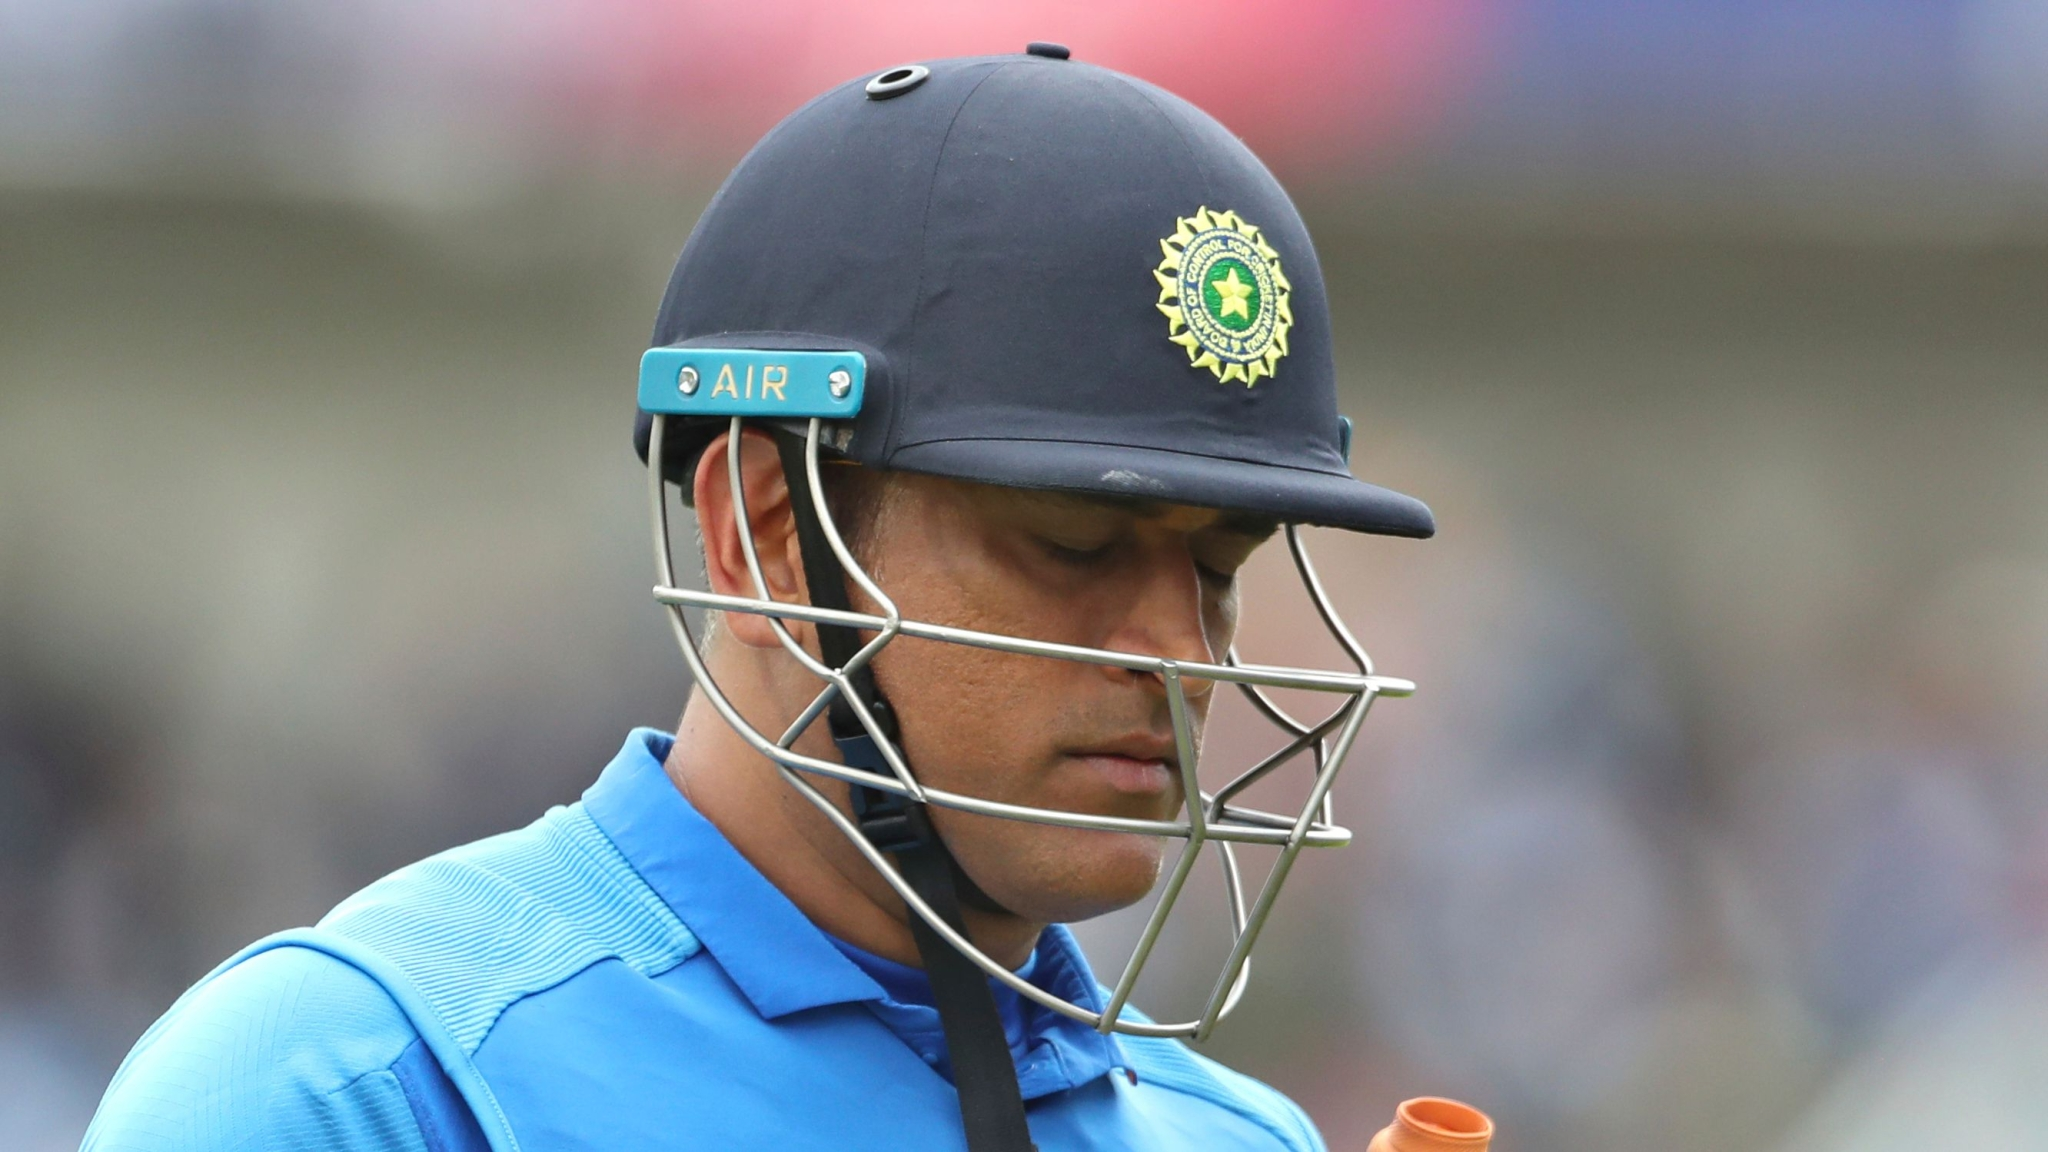 MS Dhoni's Parents Want Him to Retire, Says His Childhood Coach